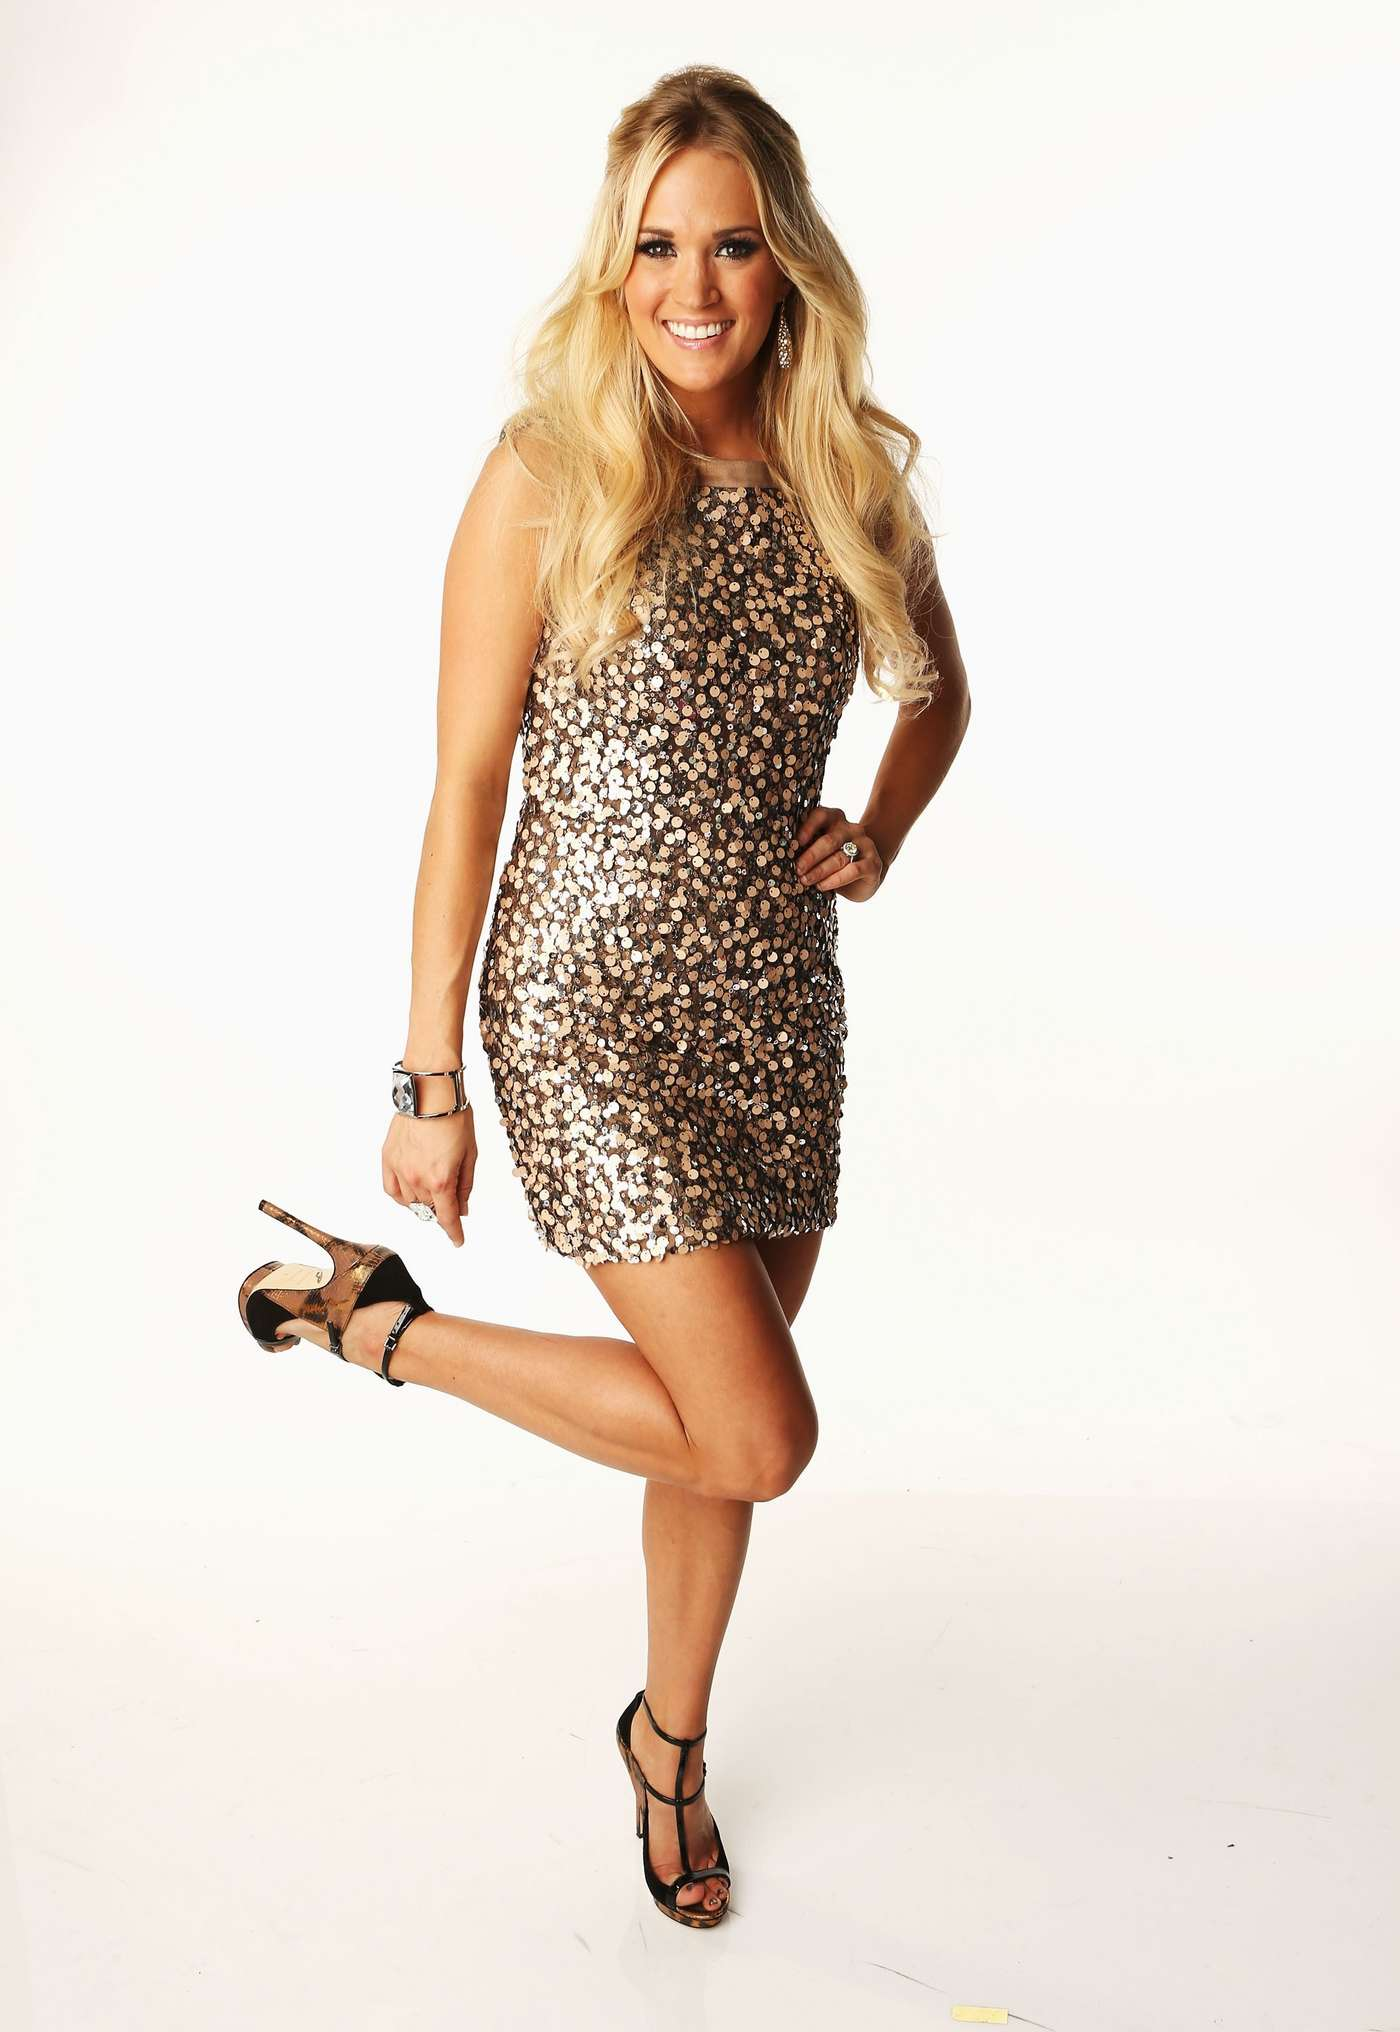 Carrie Underwood 2012 : Carrie Underwood – CMT Music Awards-04